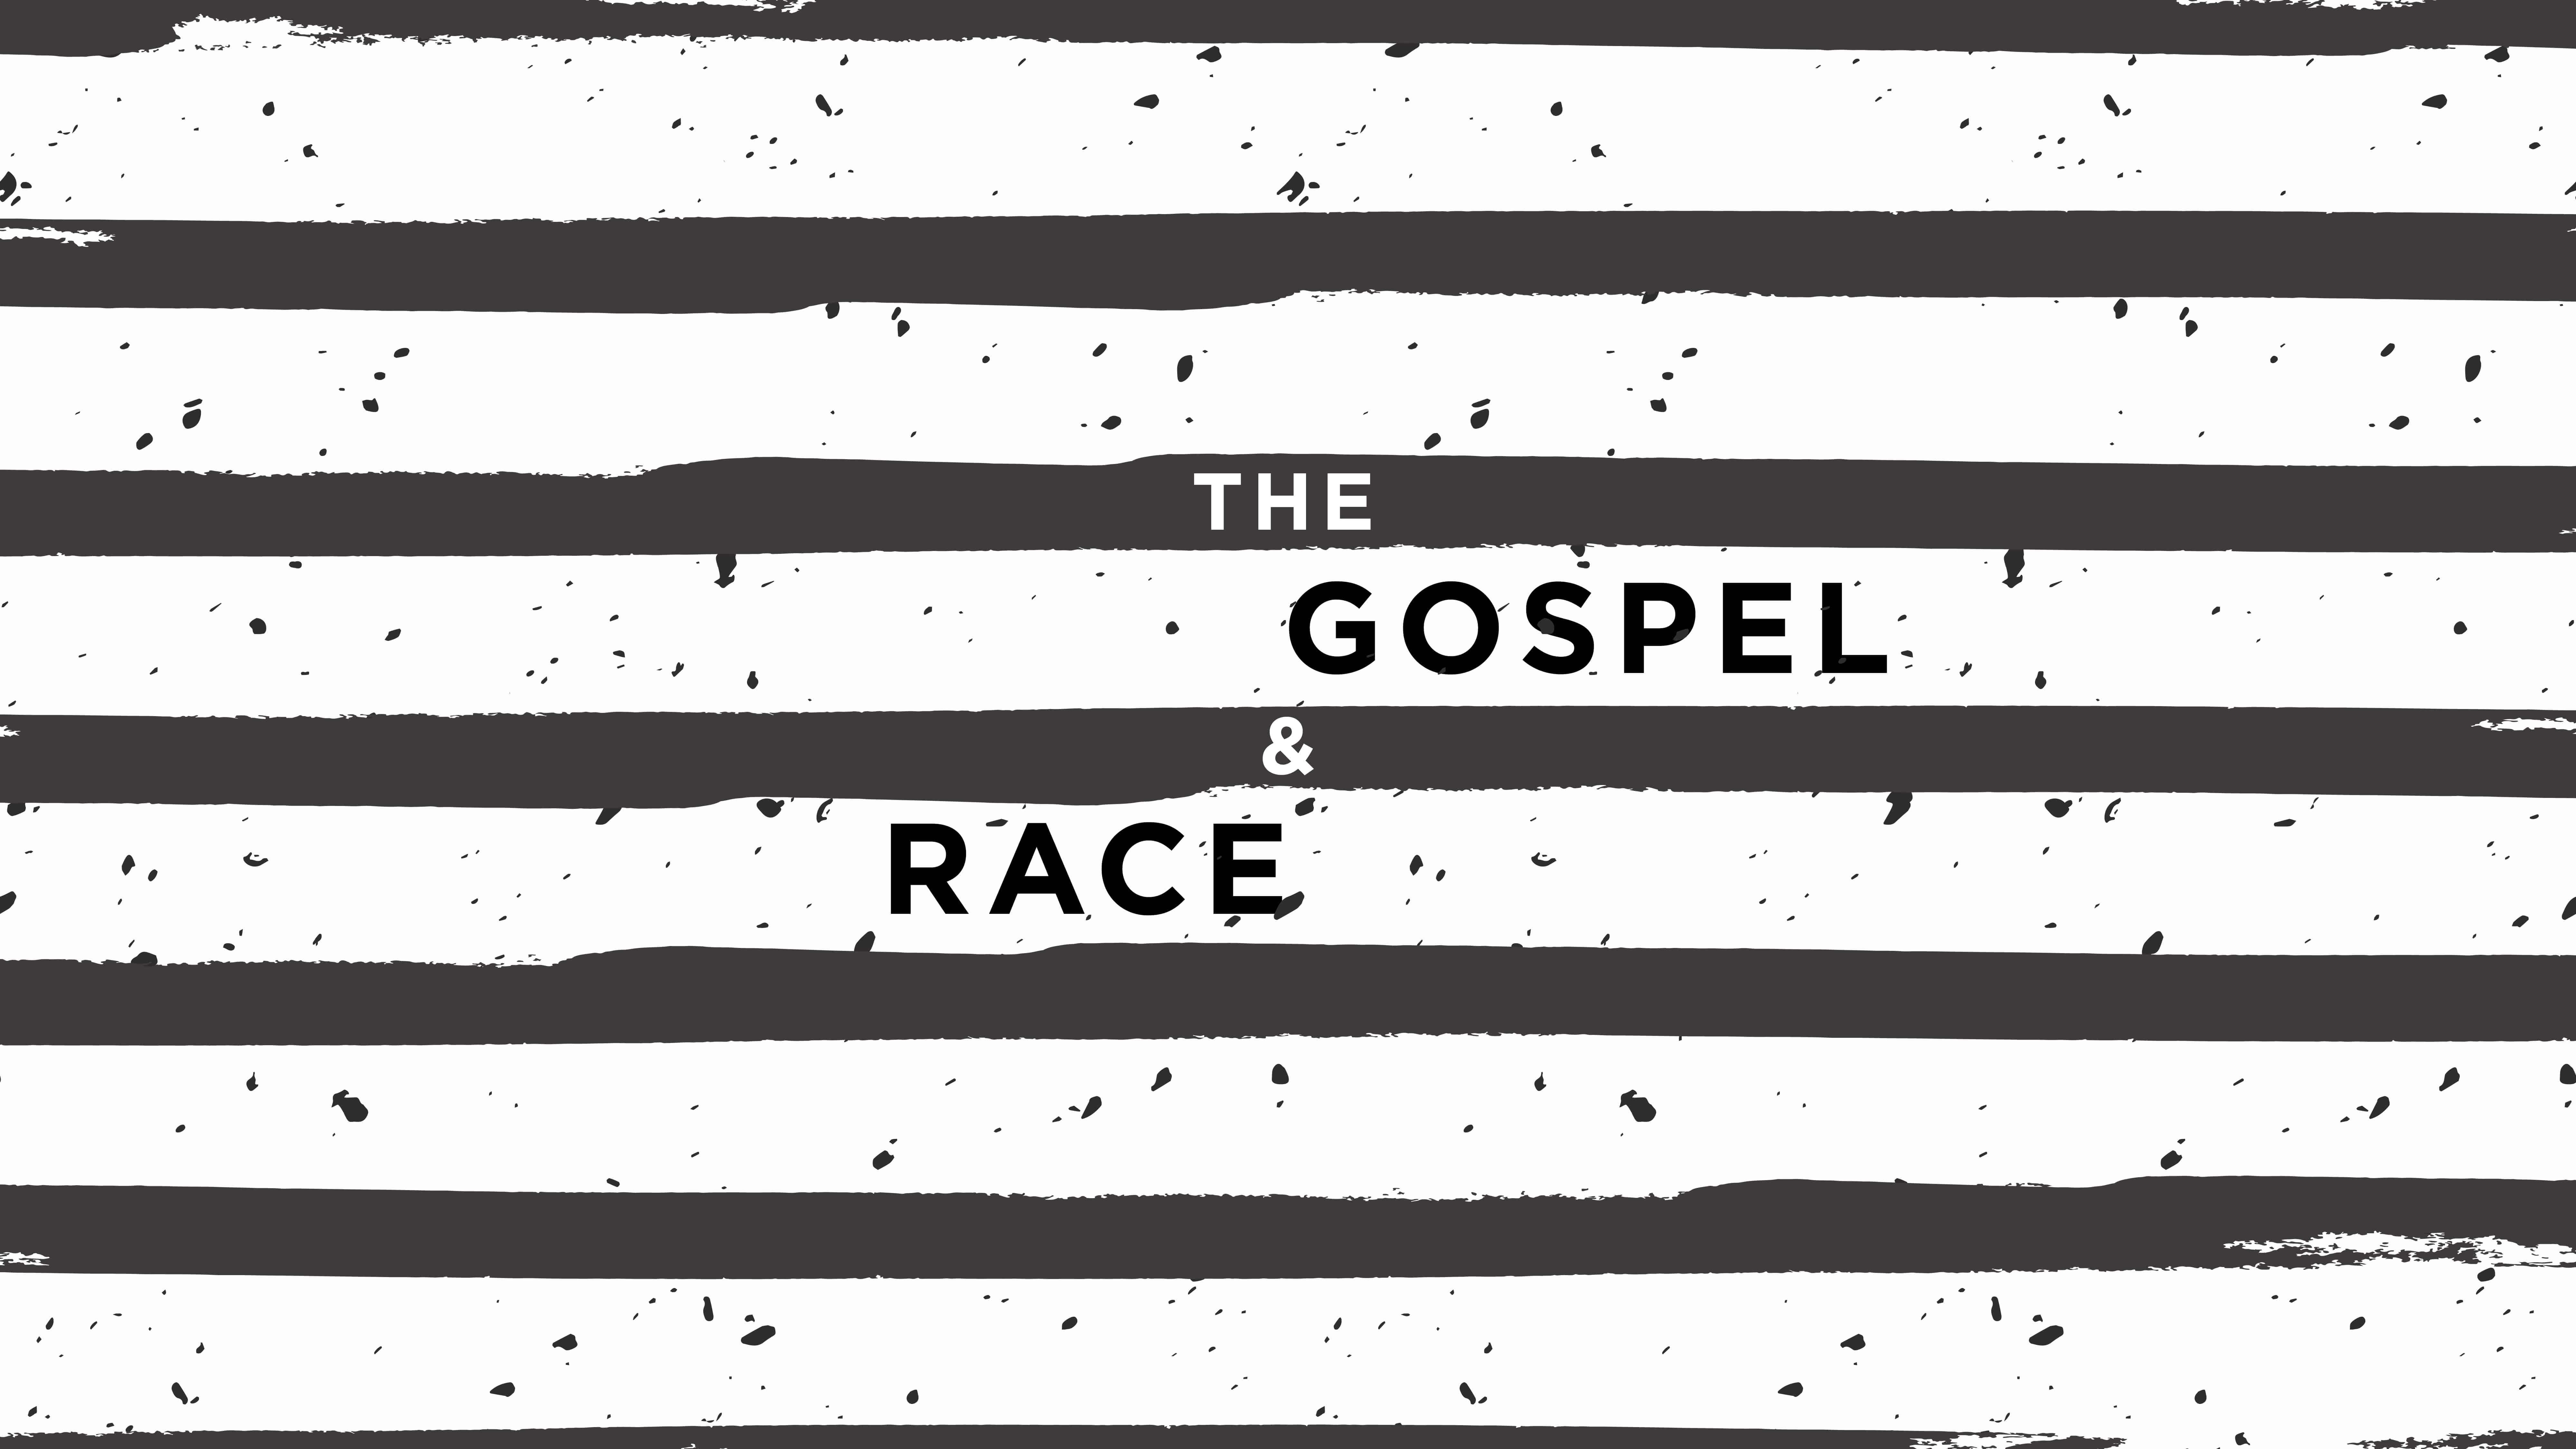 The Gospel and Race